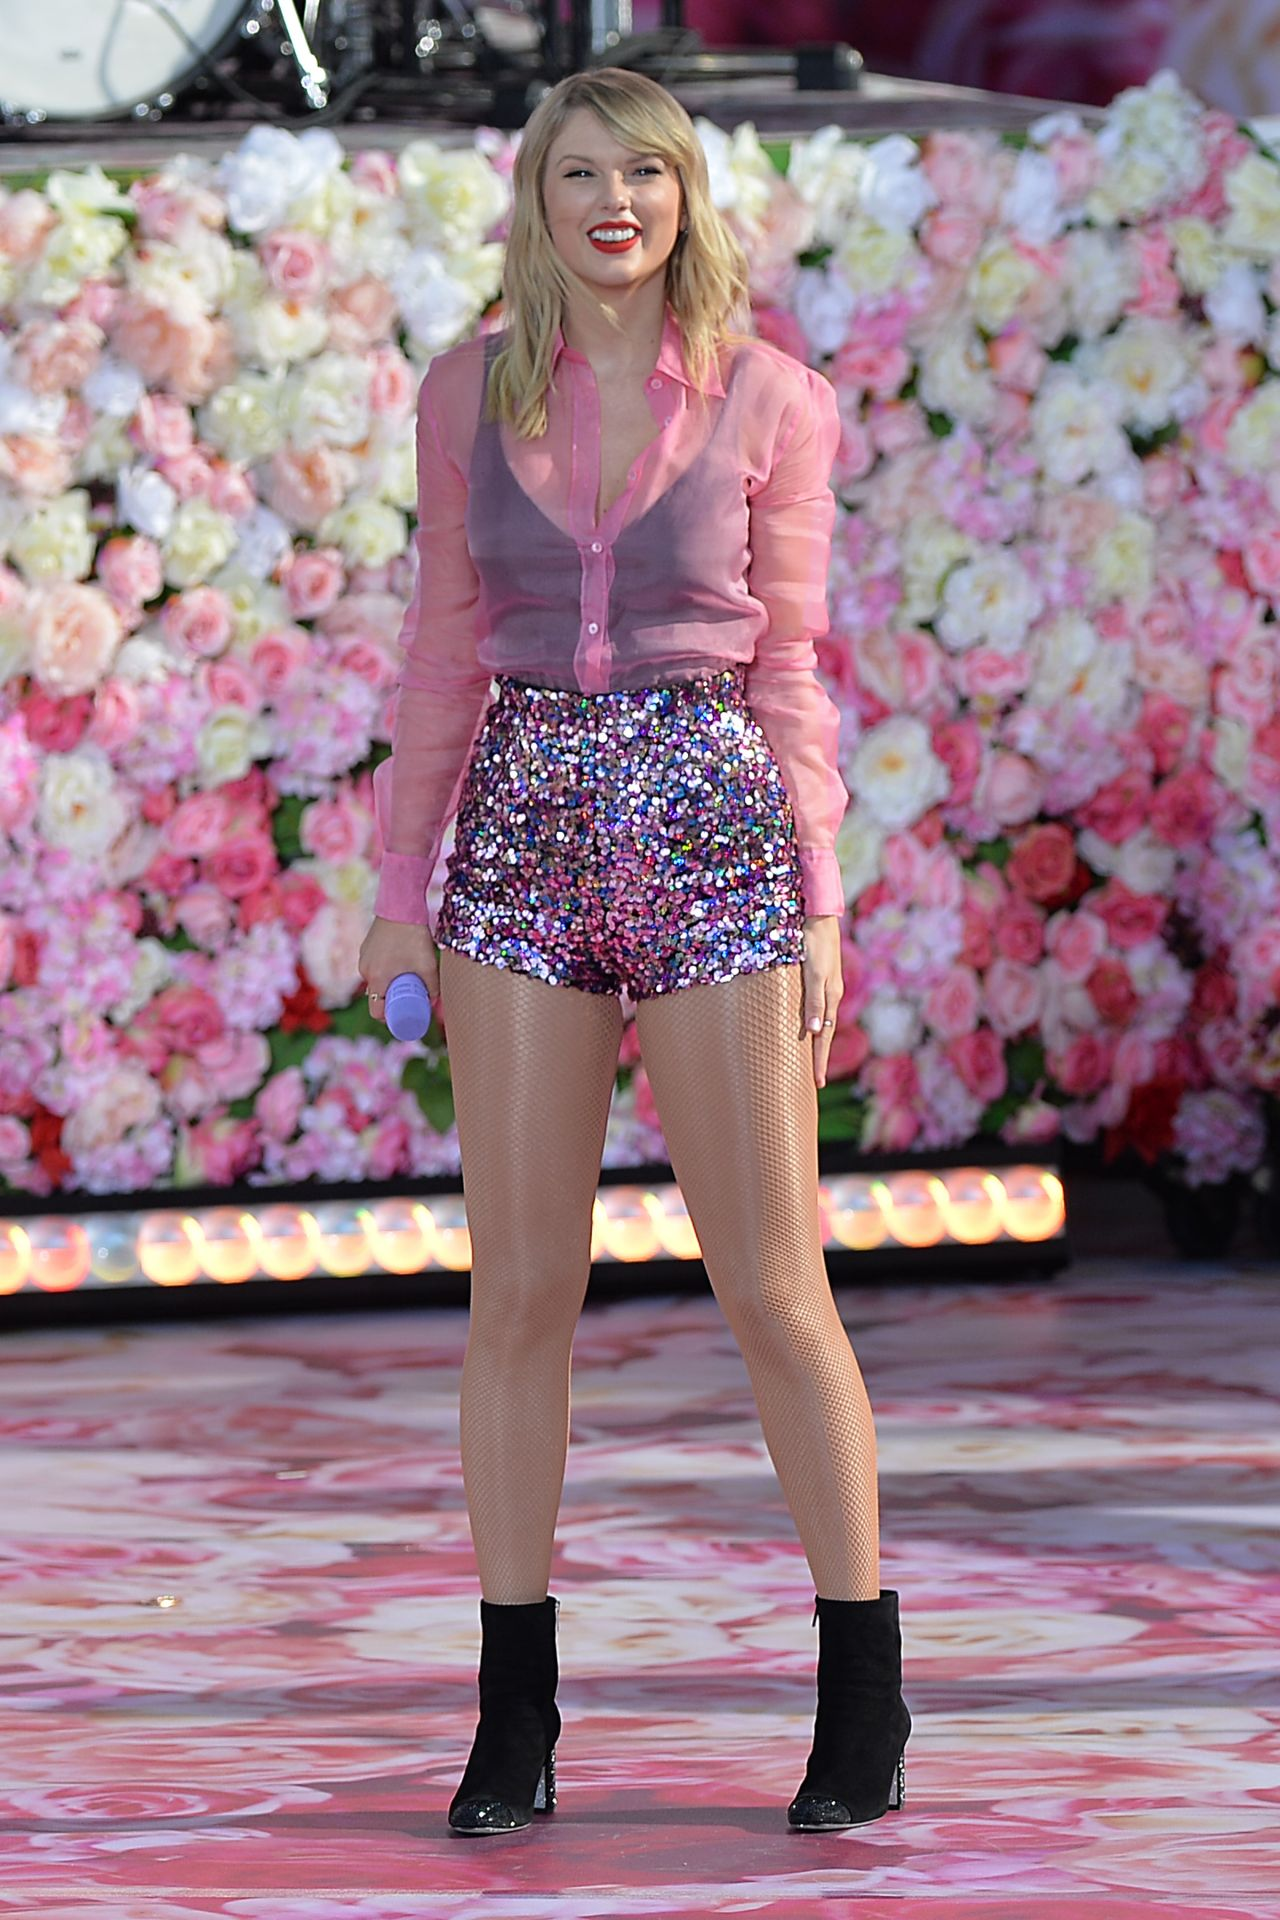 Taylor Swift Performing On Gma In Nyc 08 22 2019